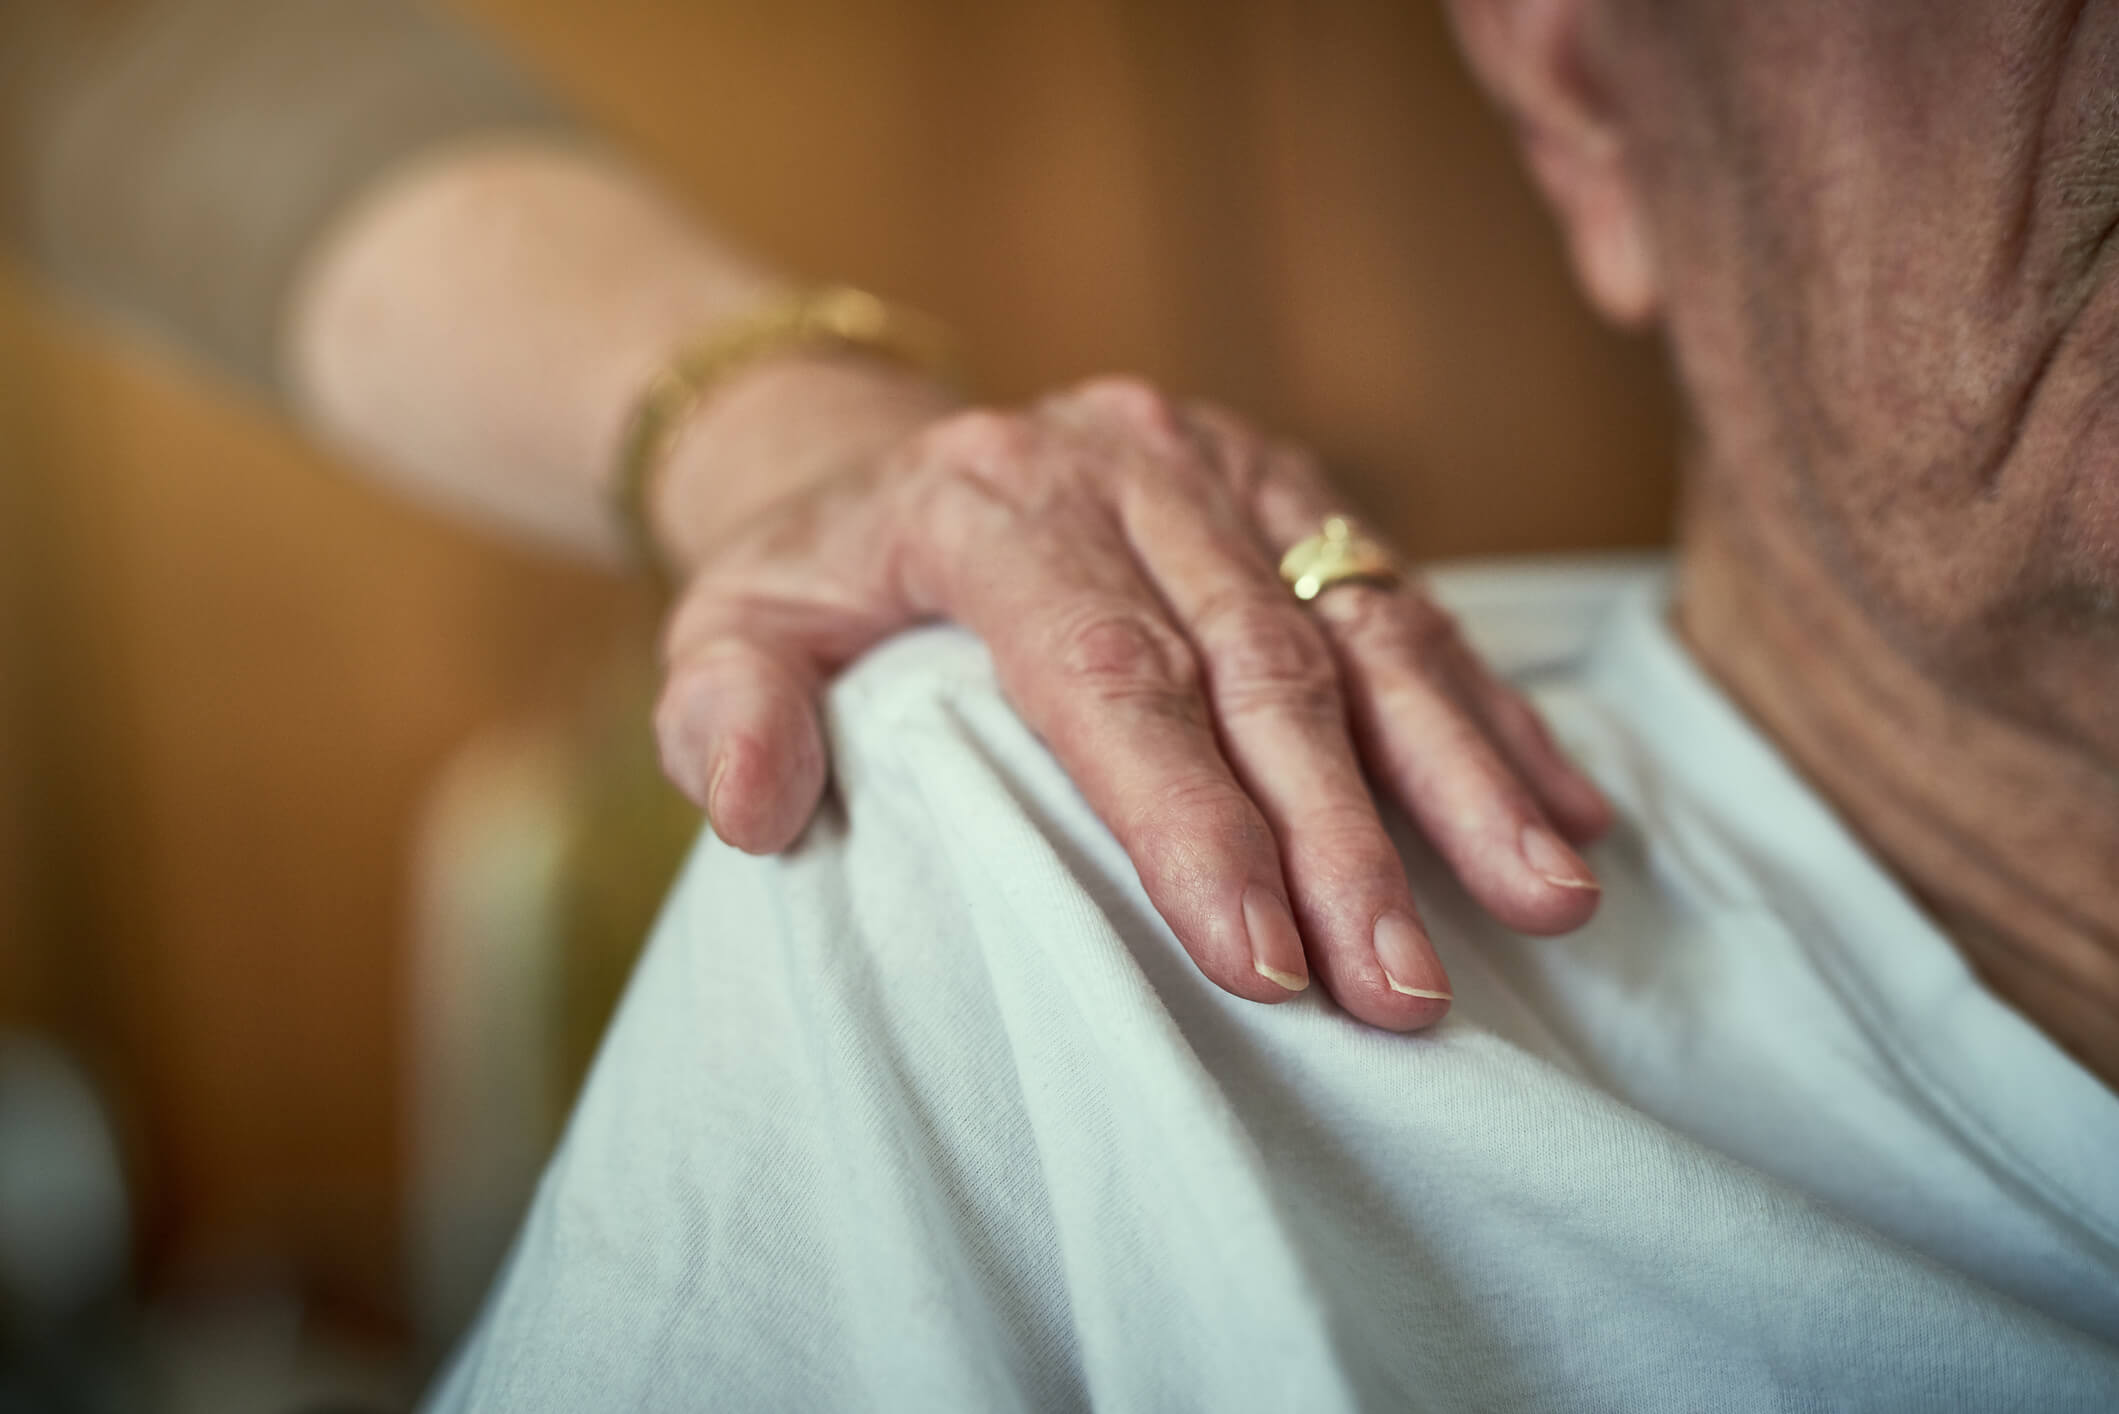 Photo of elderly woman's hand lovingly resting upon her husband's shoulder.